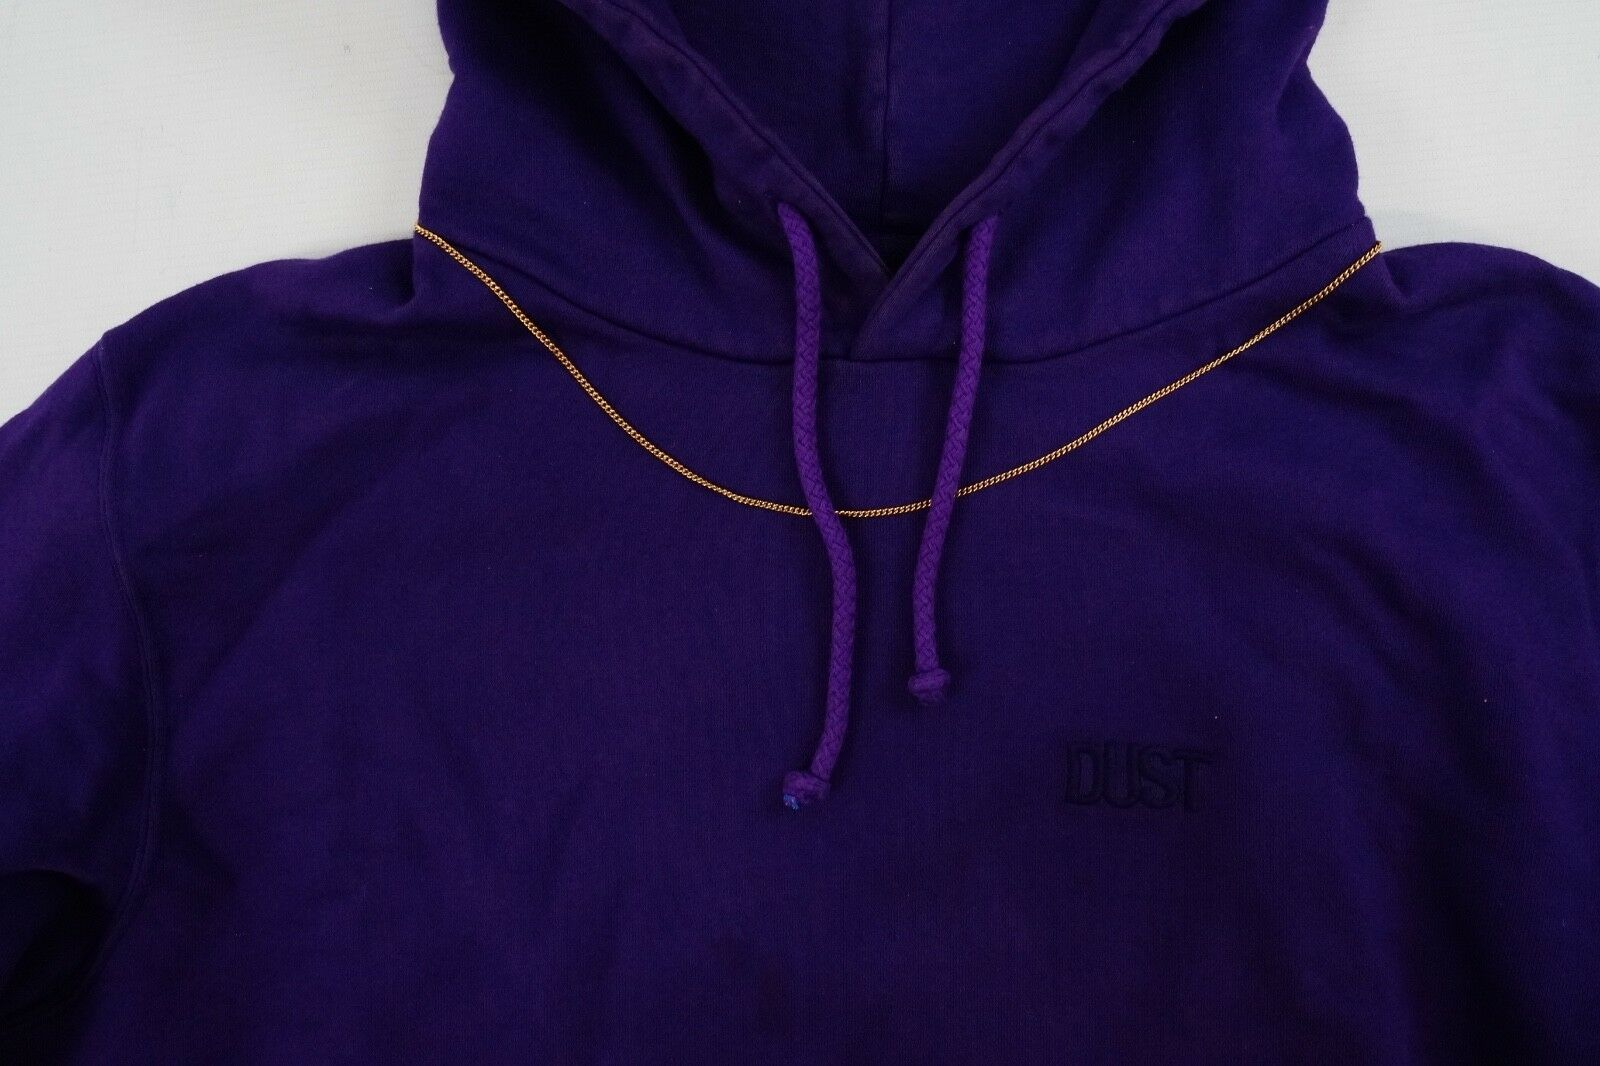 Dust Slogan Embroide Embroide Embroide Hoodie Sweatshirt Pulli mit Kapuze Kette Lila Gr M 831  | Exquisite (in) Verarbeitung  eed10c